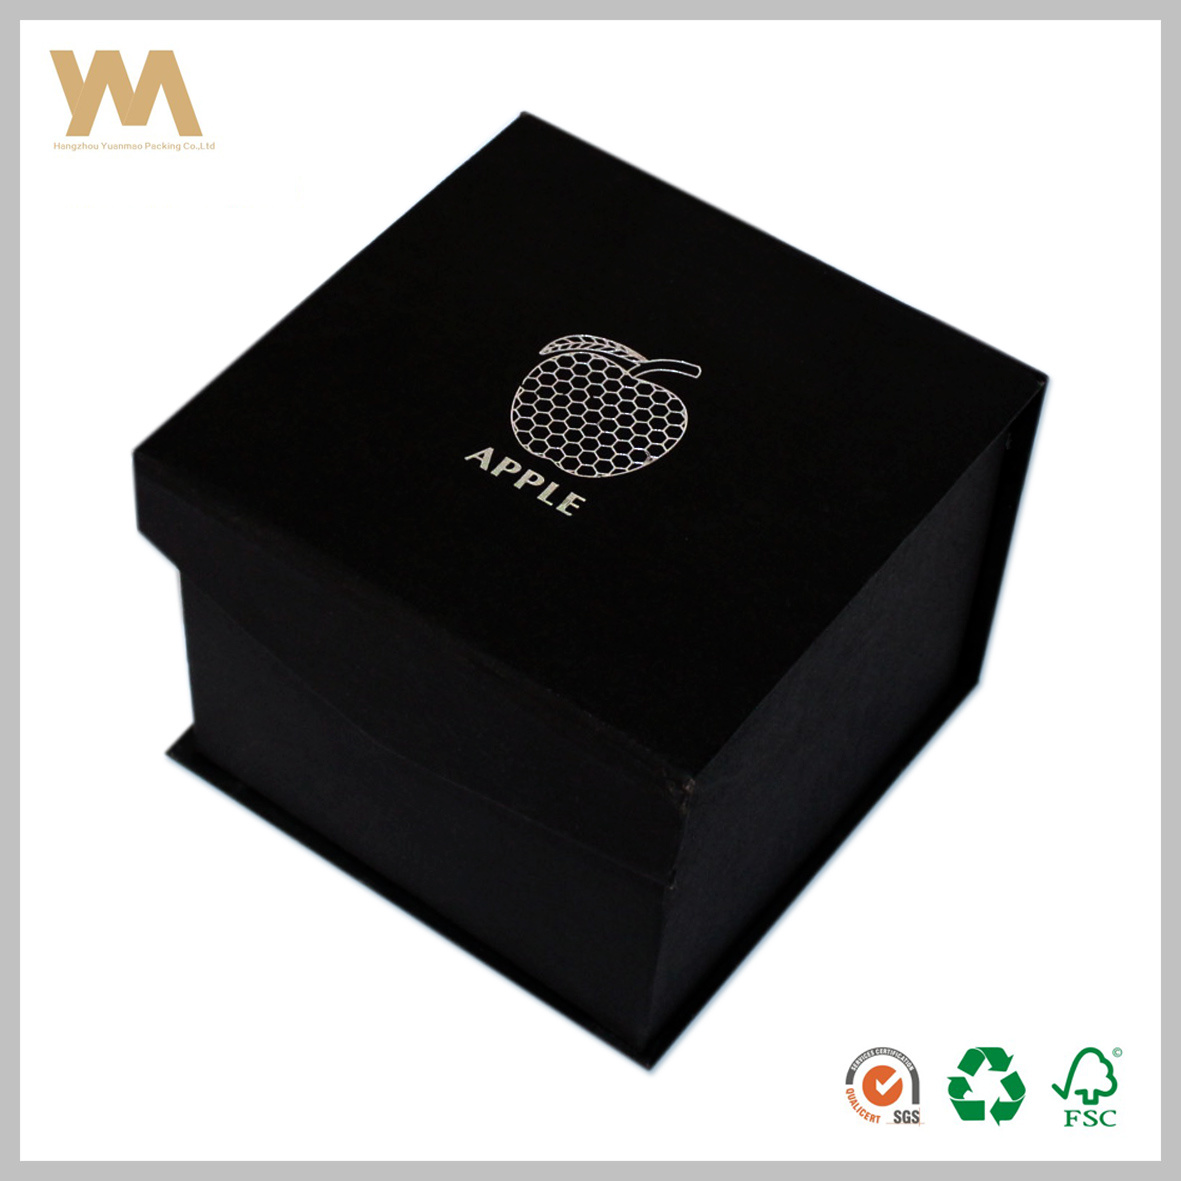 Wholesale Jewelry Packaging Hot Item Quality Wholesale Flip Paper Jewelry Packaging Box